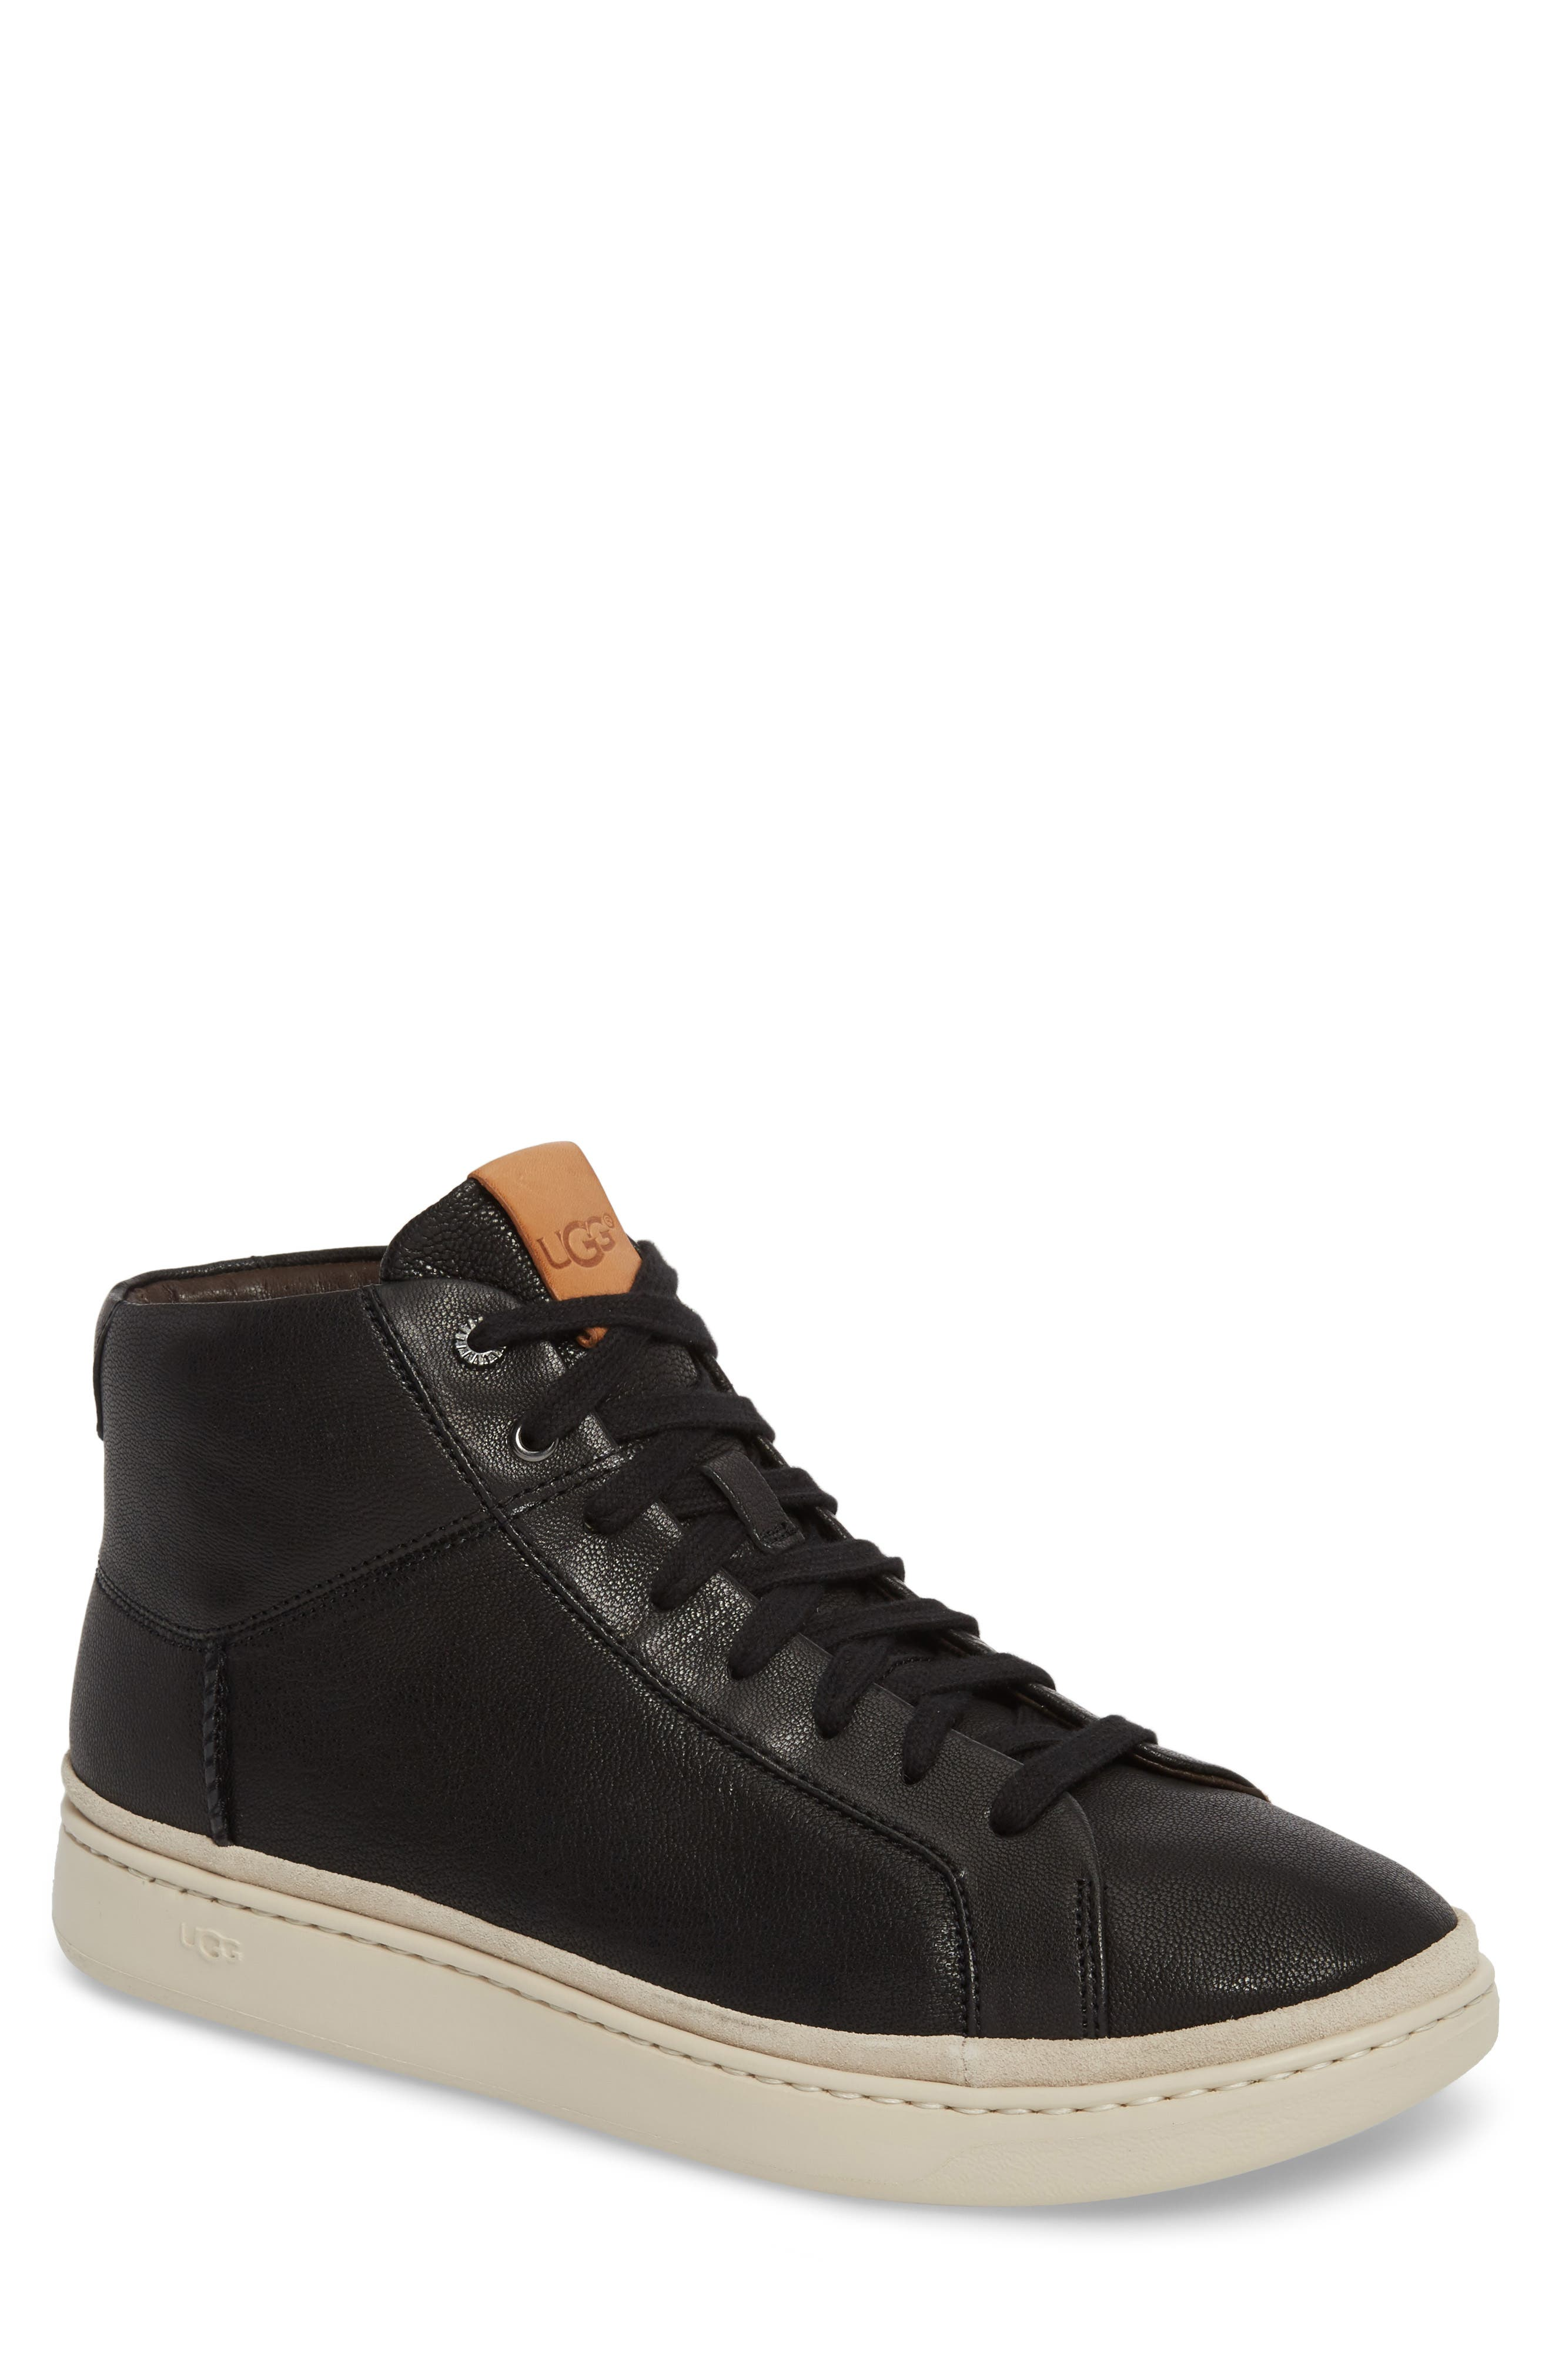 Cali High Top Sneaker,                             Main thumbnail 1, color,                             Black Leather